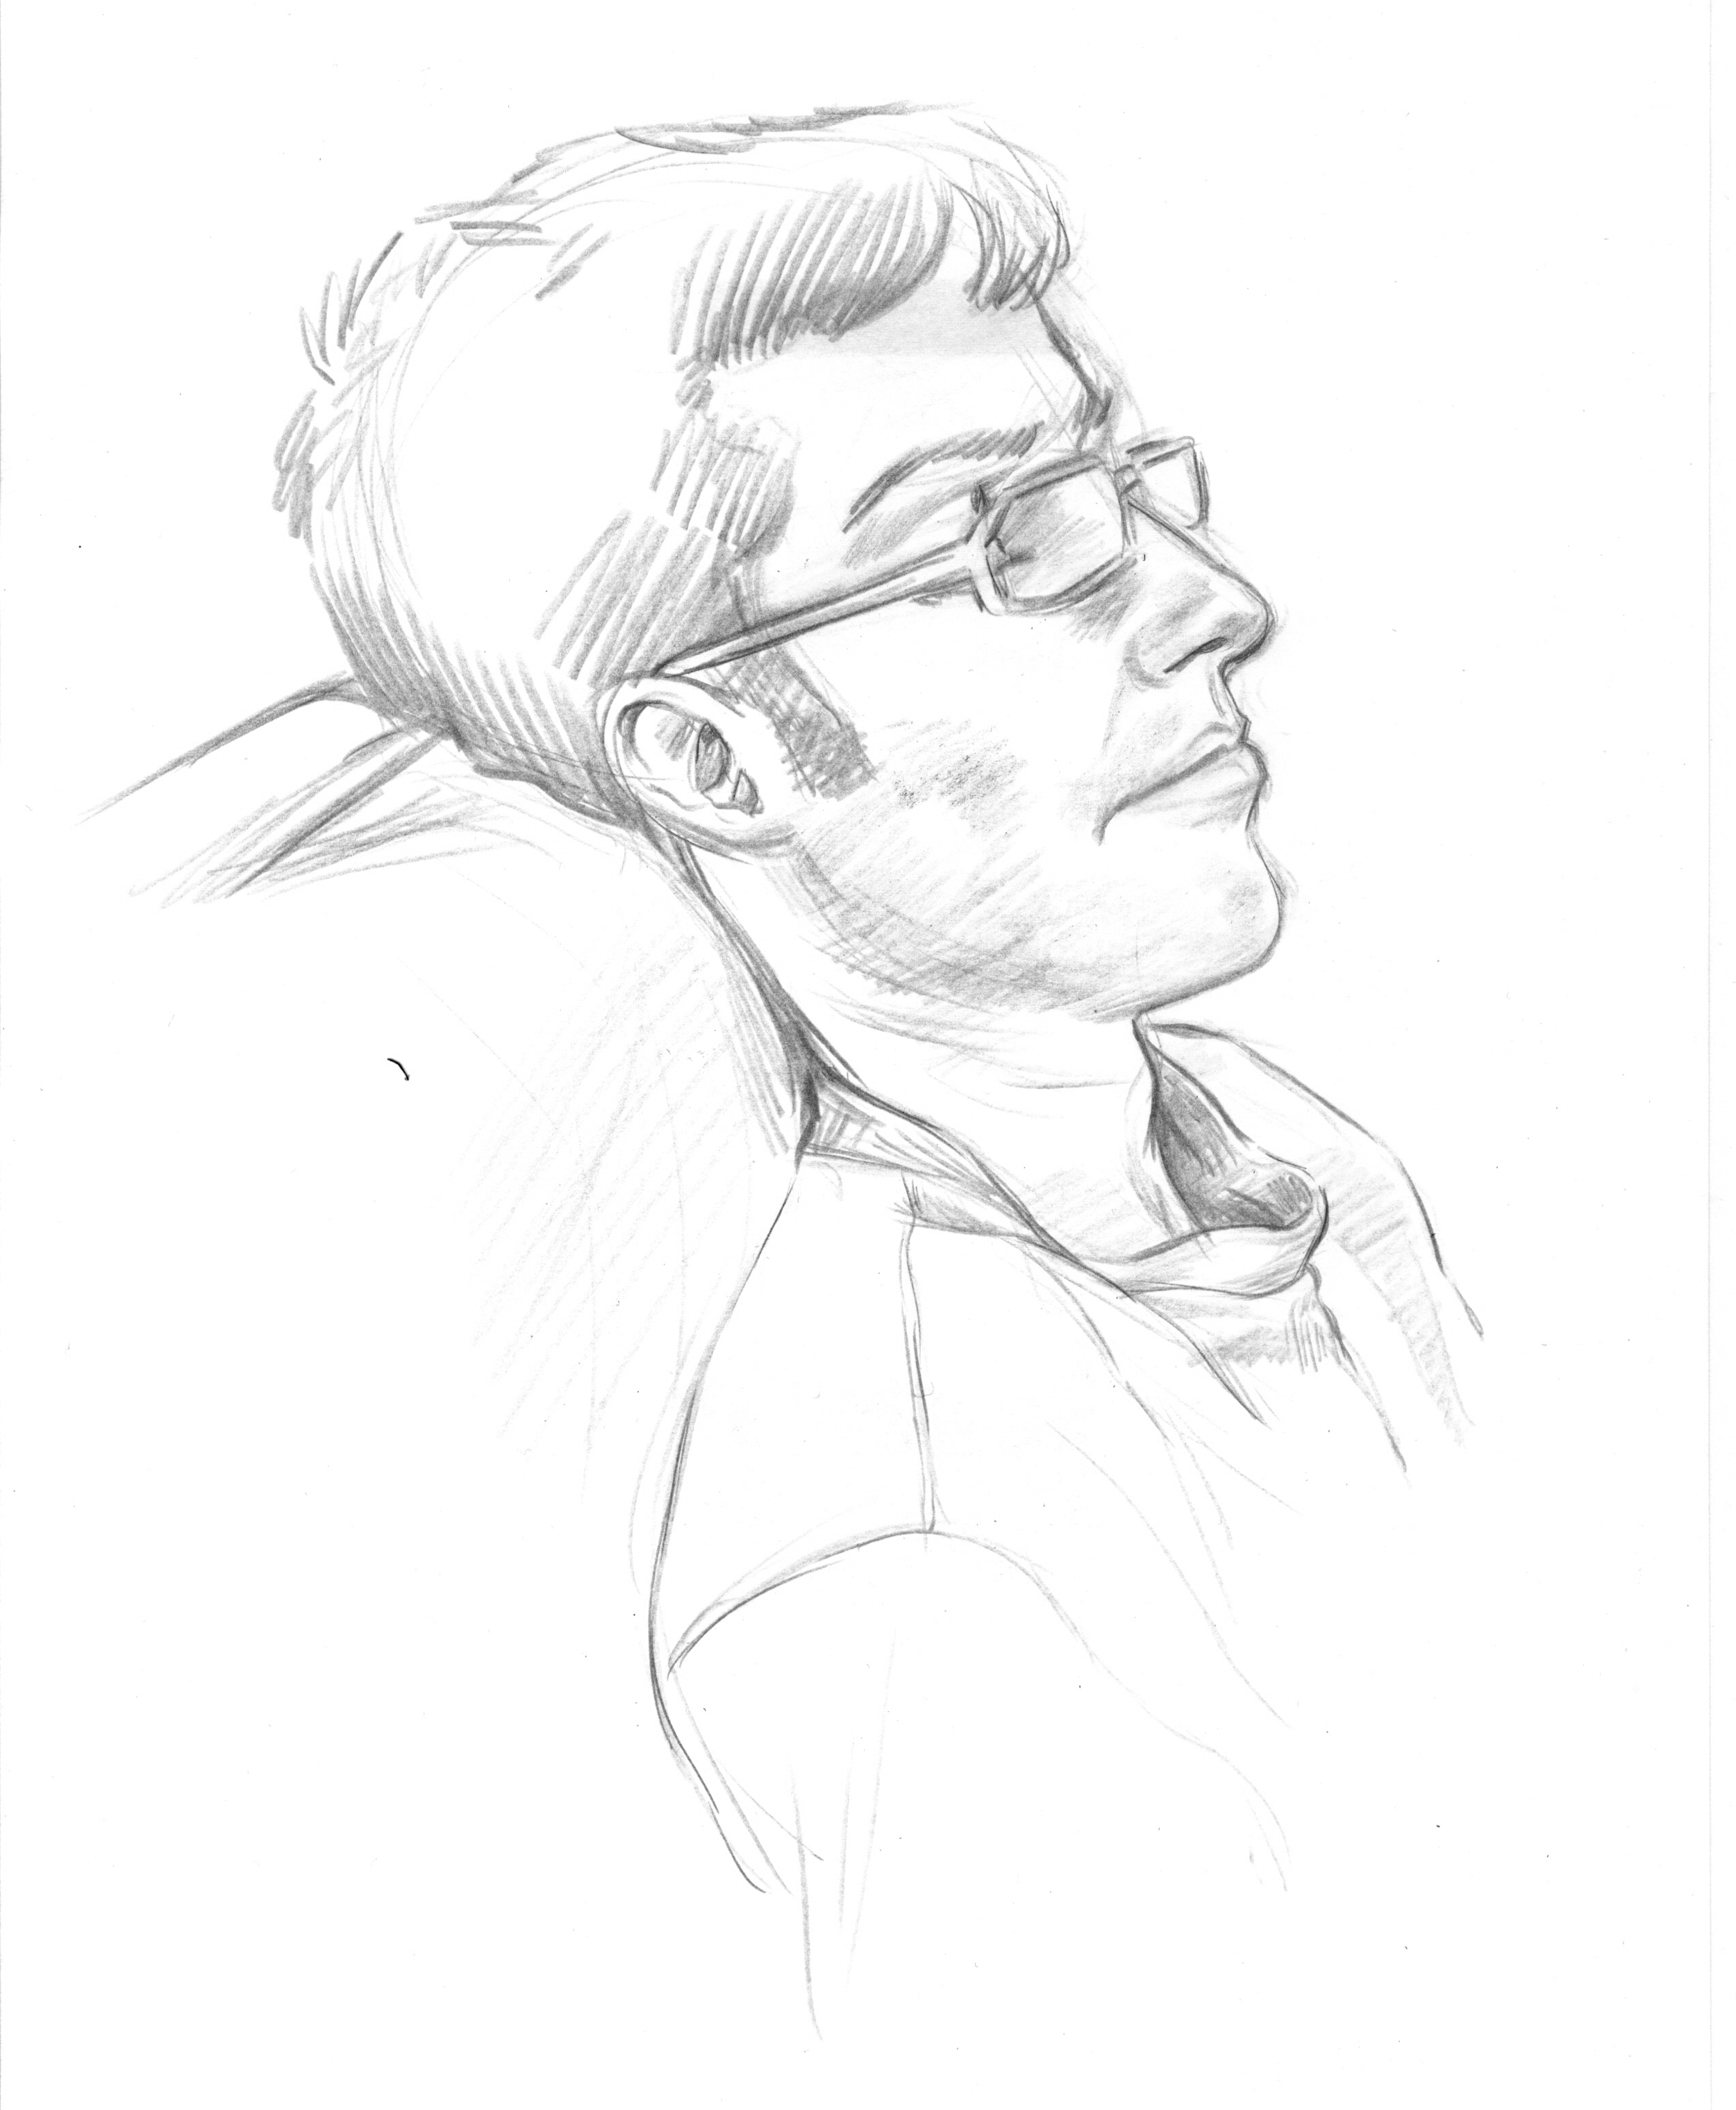 This is a quick sketch I did of Paul